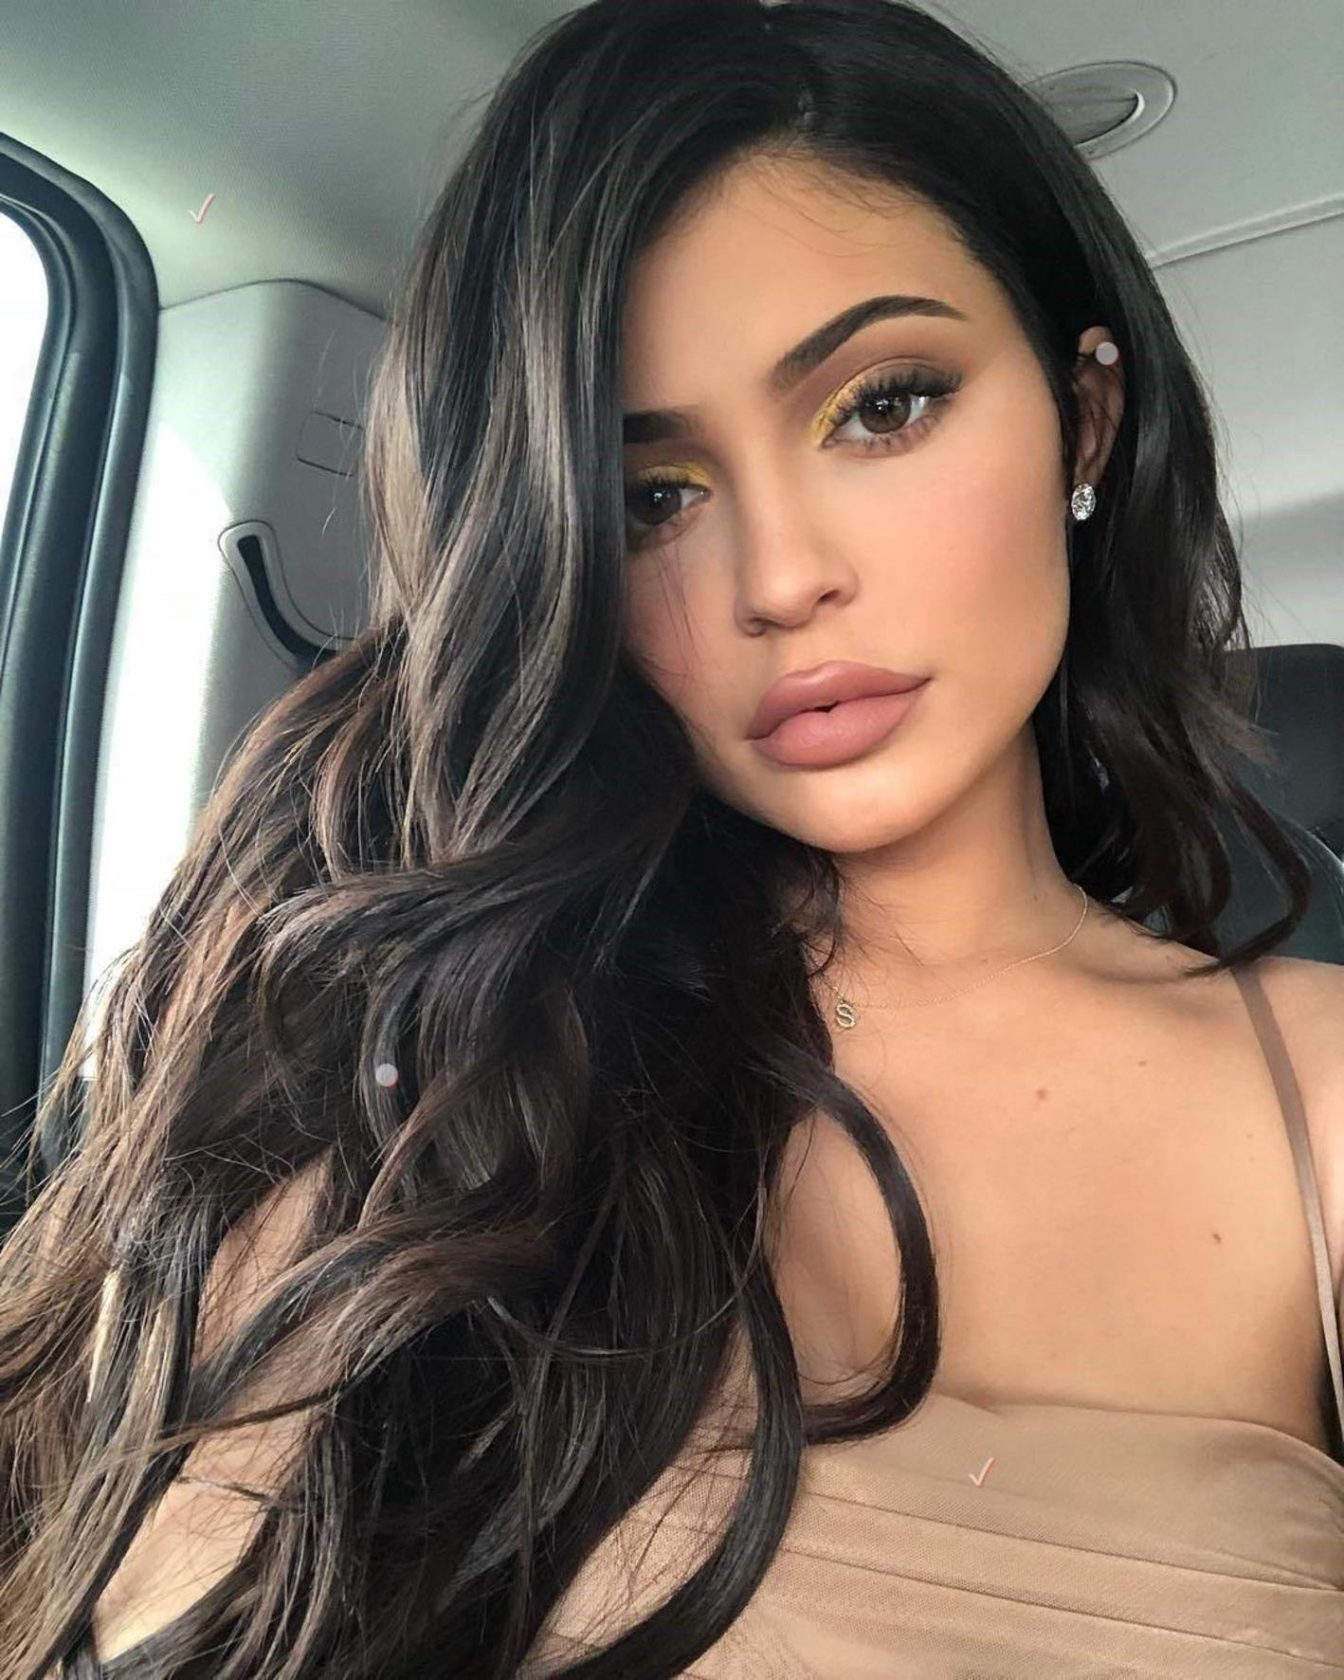 """Kylie Jenner (kyliejenner / 18.05.2018): pop up """""""", Image: 372240431, License: Rights-managed, Restrictions: , Model Release: no, Credit line: Profimedia, Face To Face A"""